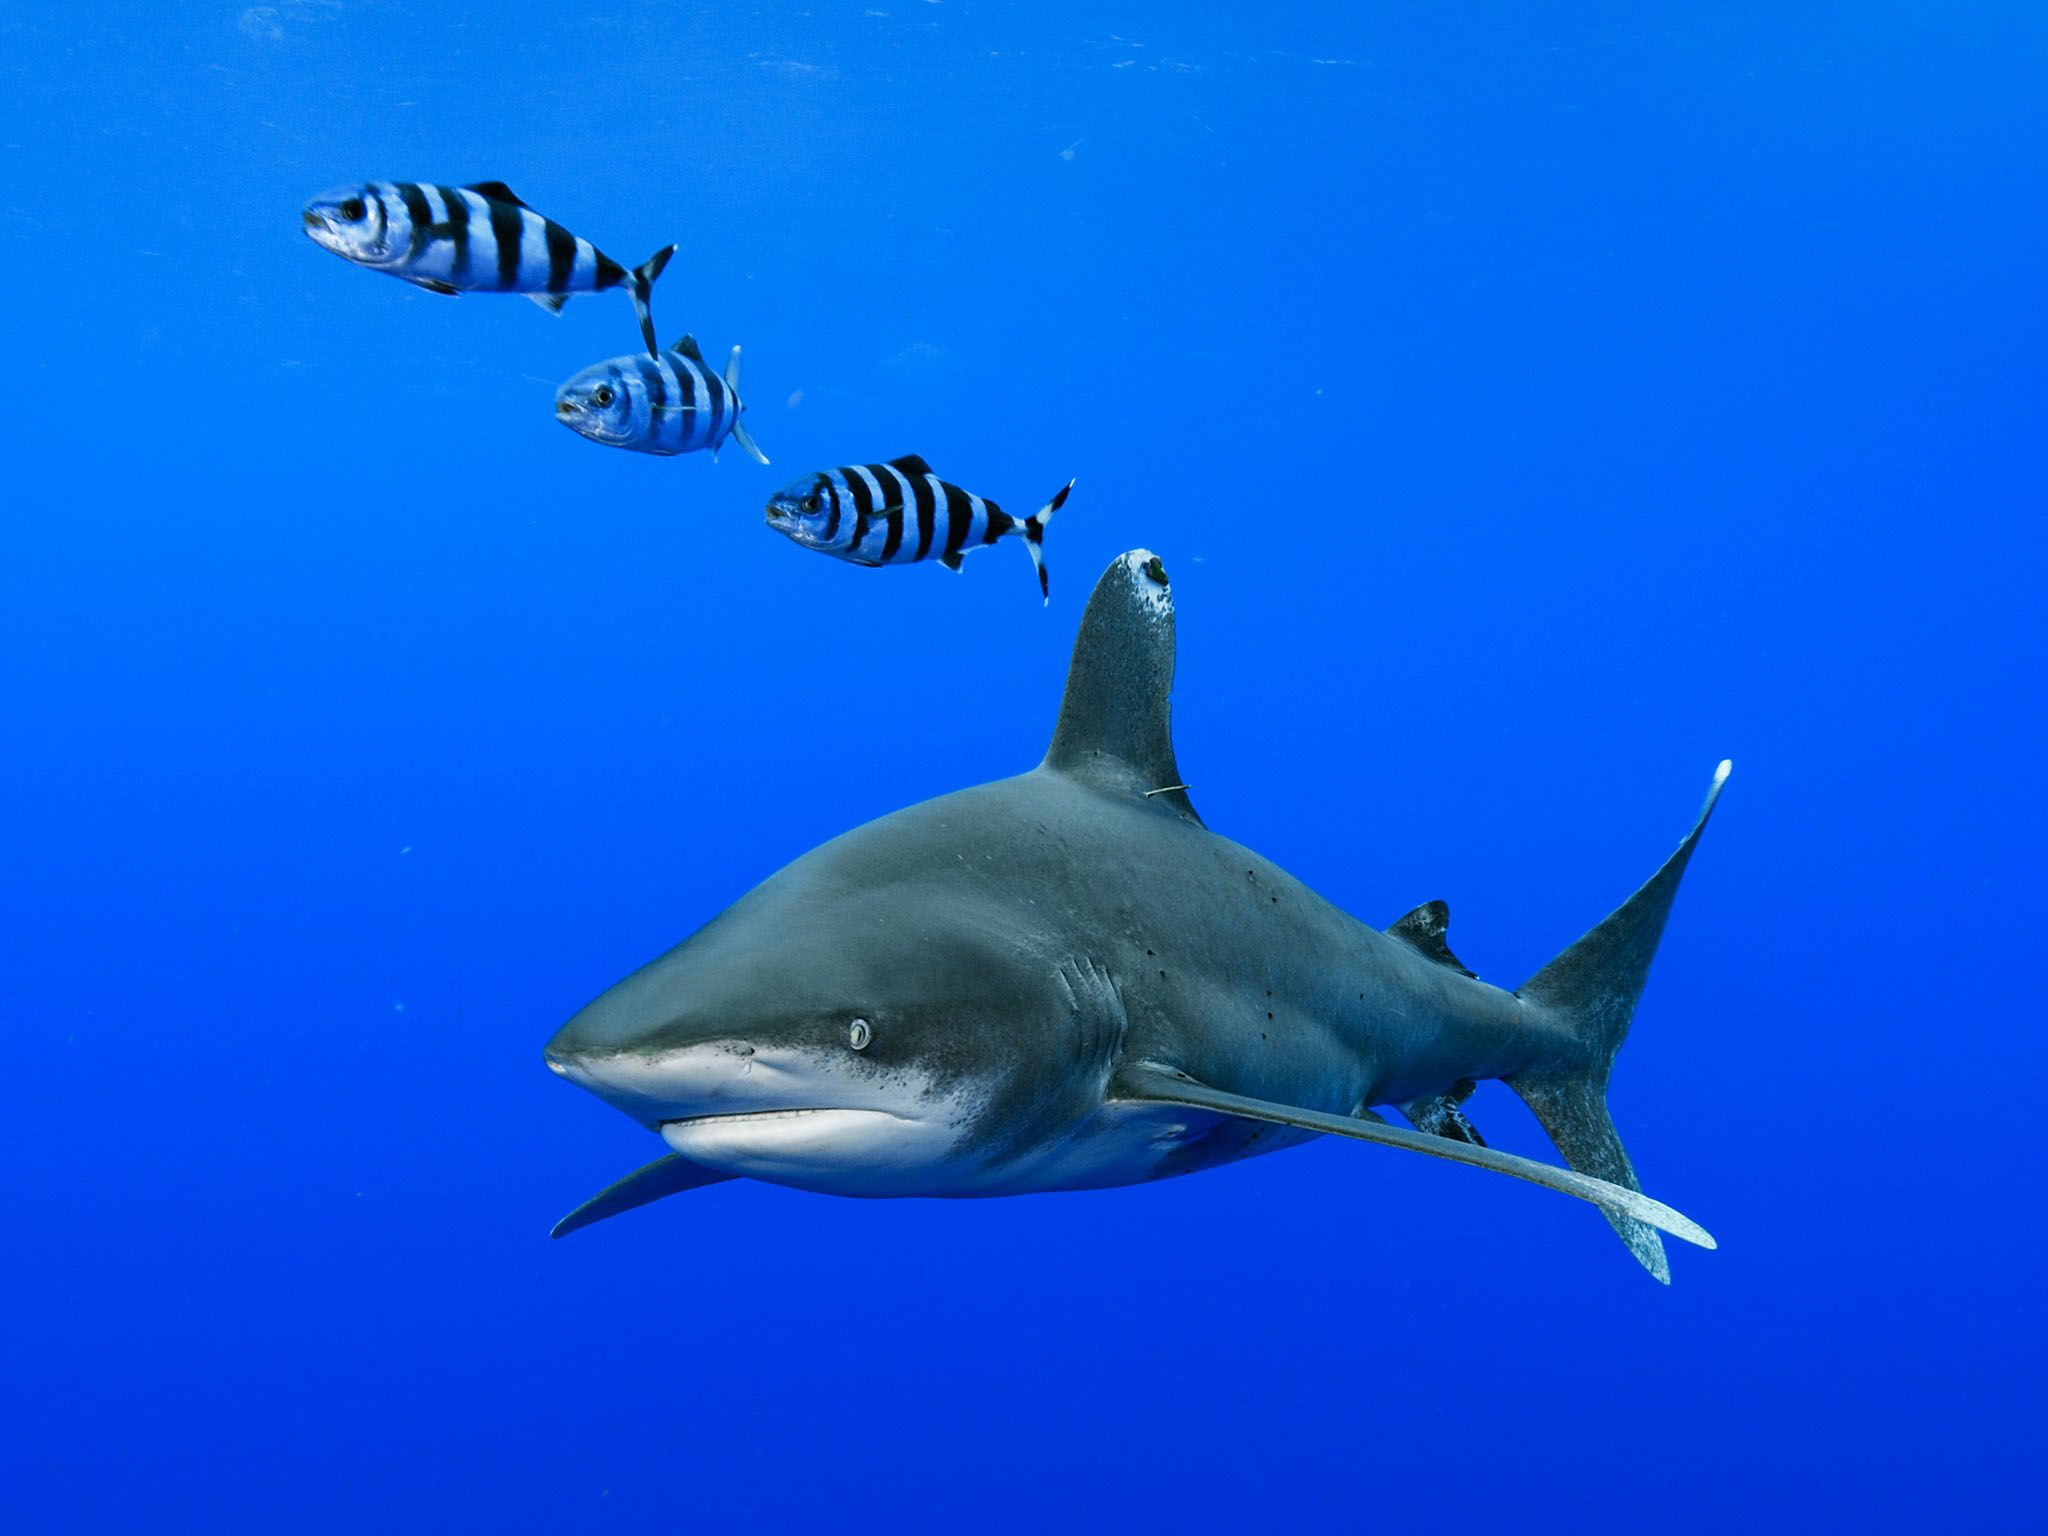 The Bahamas: Oceanic whitetip shark (Carcharhinus longimanus) in the waters off Cat Island in... [Photo of the day - نوامبر 2016]